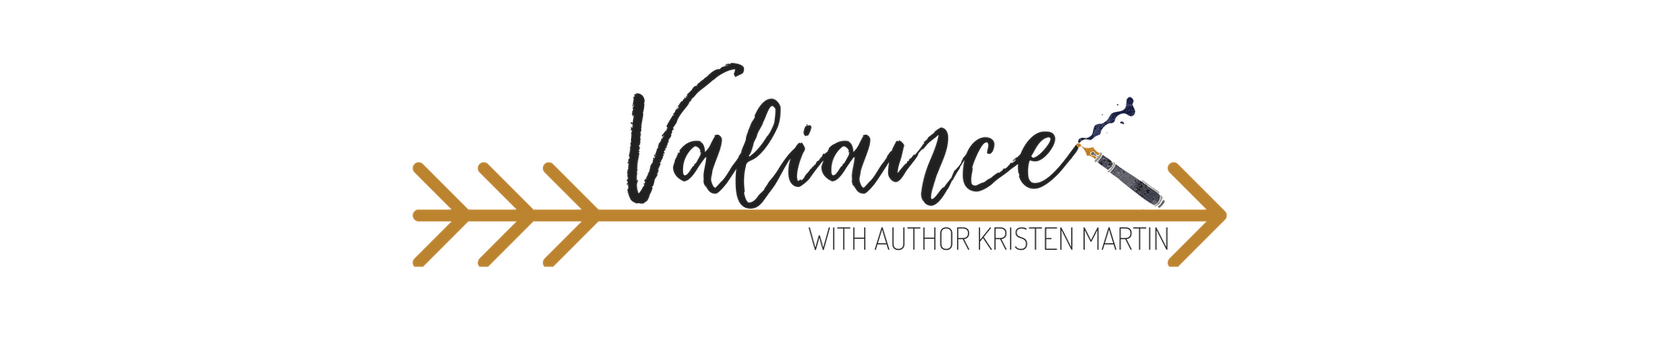 Valiance Logo - Updated.png